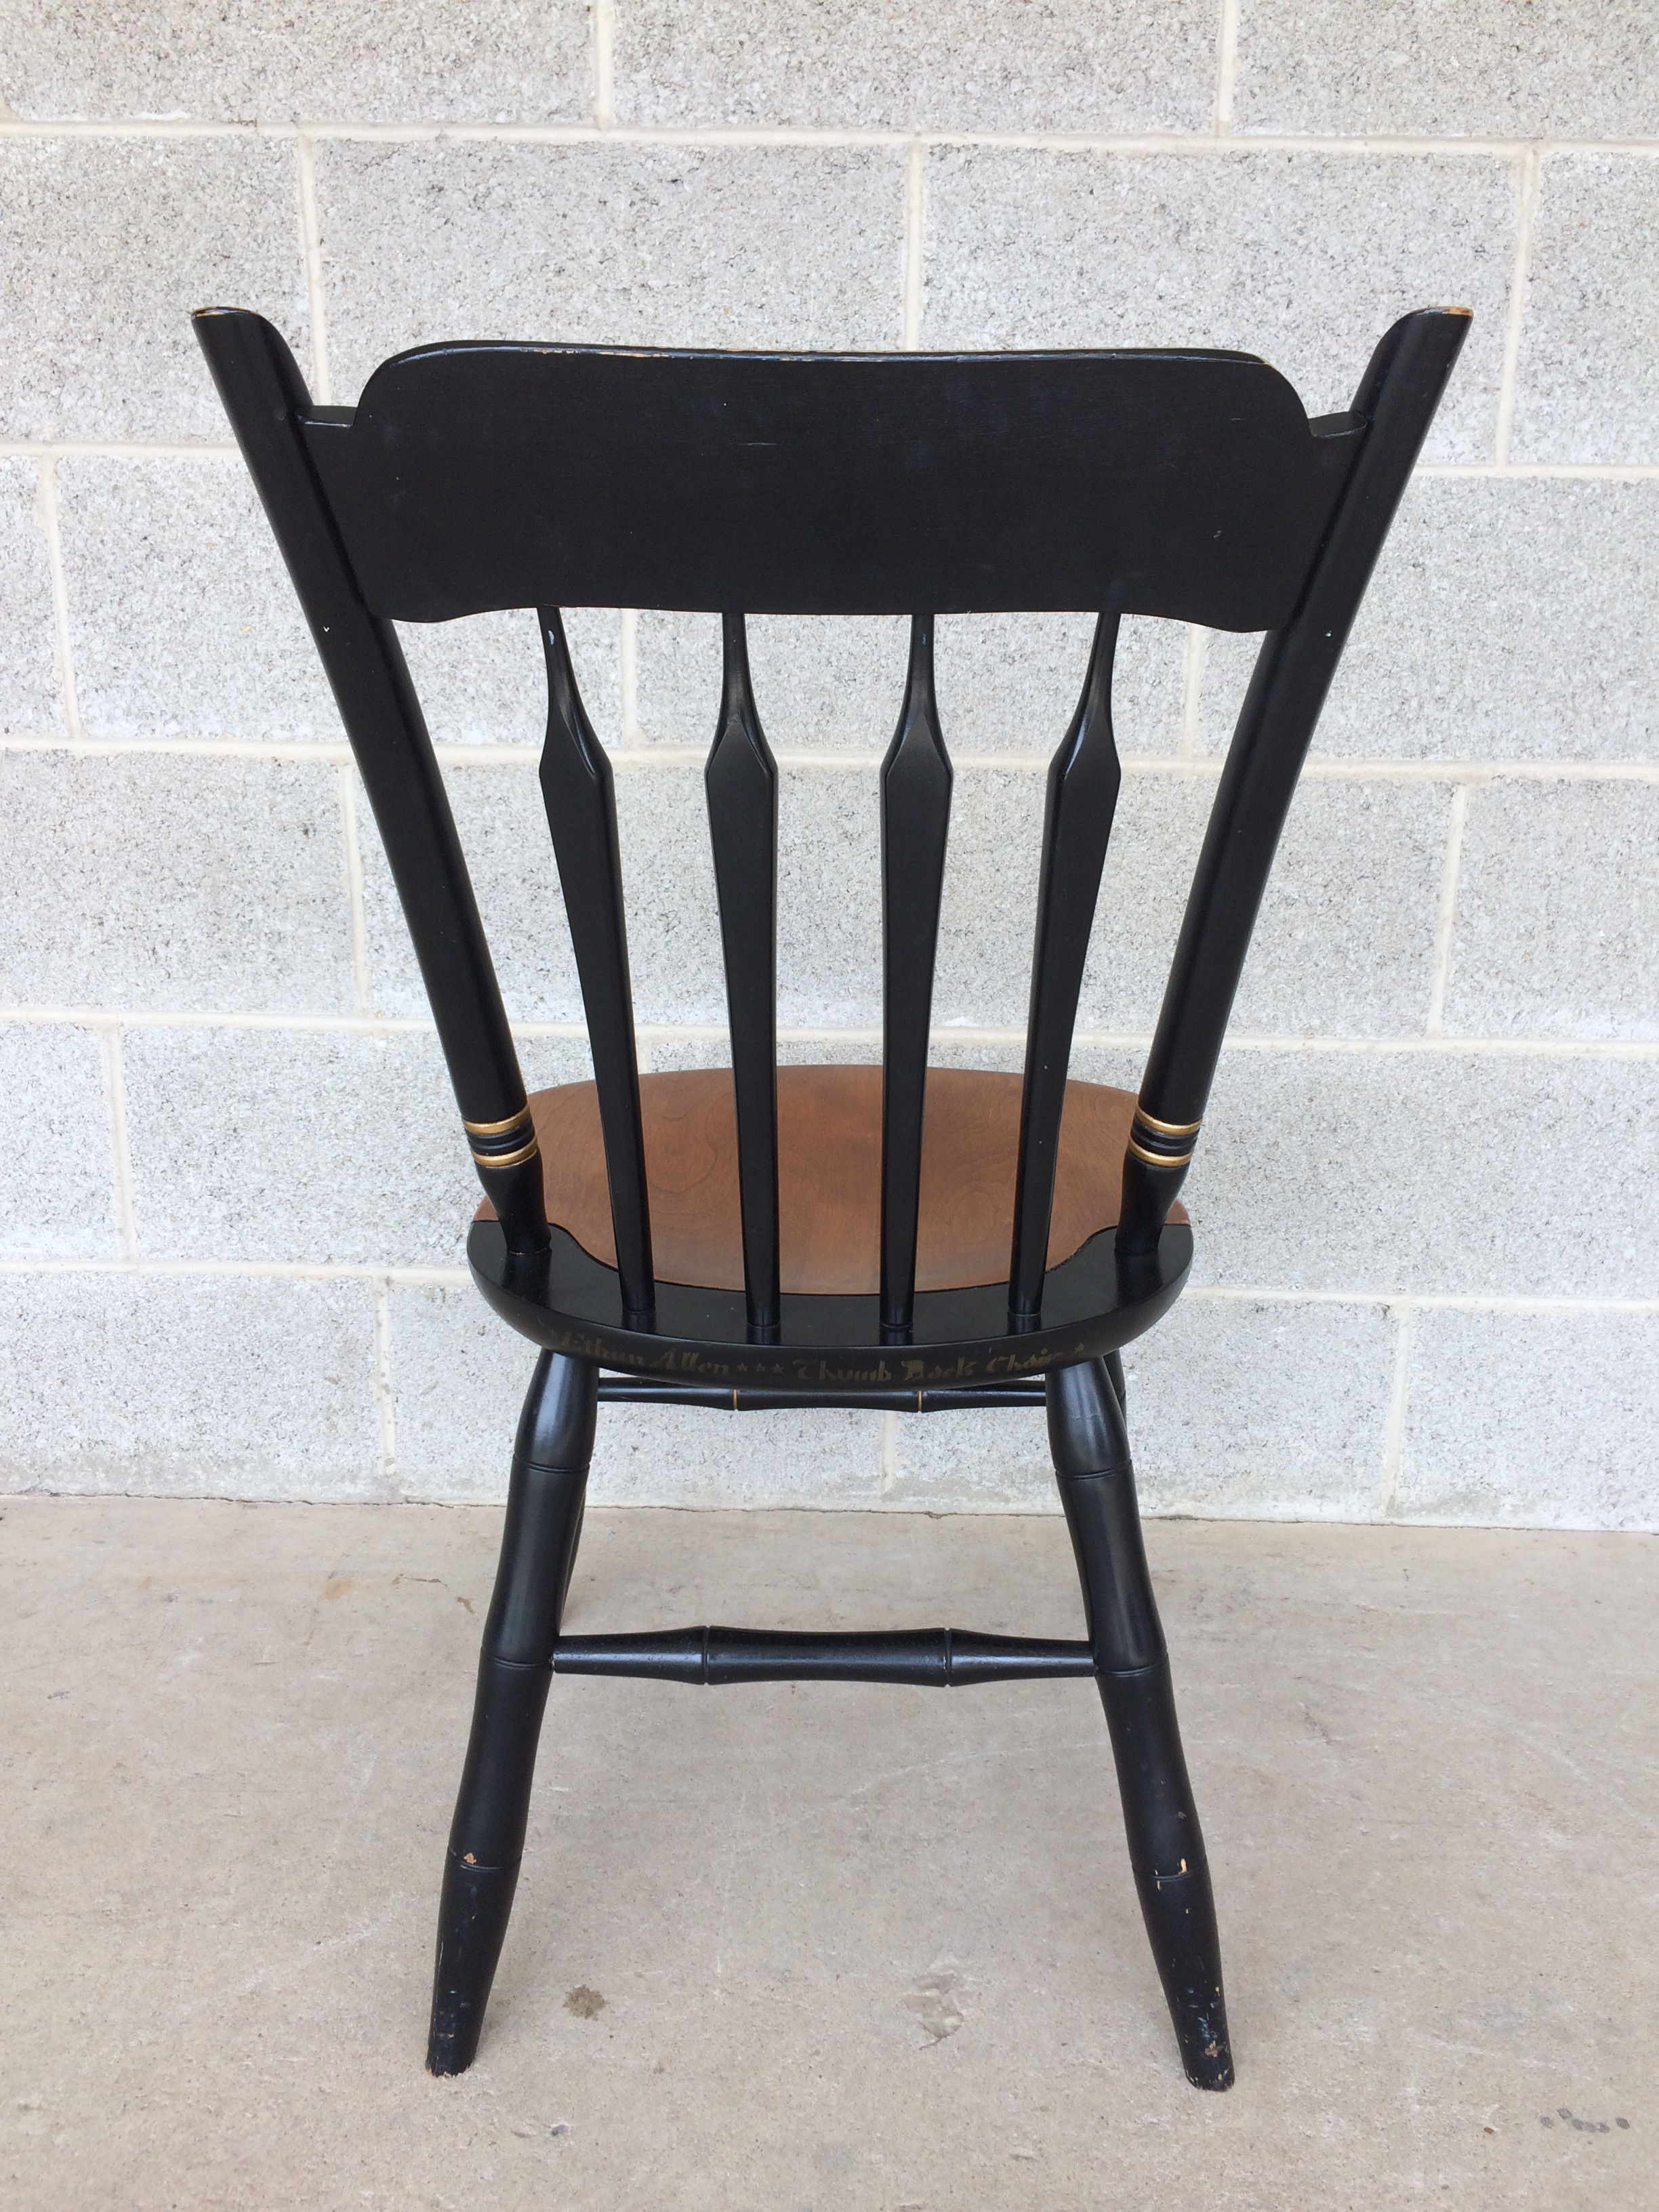 Ethan Allen Hitchcock Style Thumb Back Chairs   Set Of 4 For Sale   Image 5